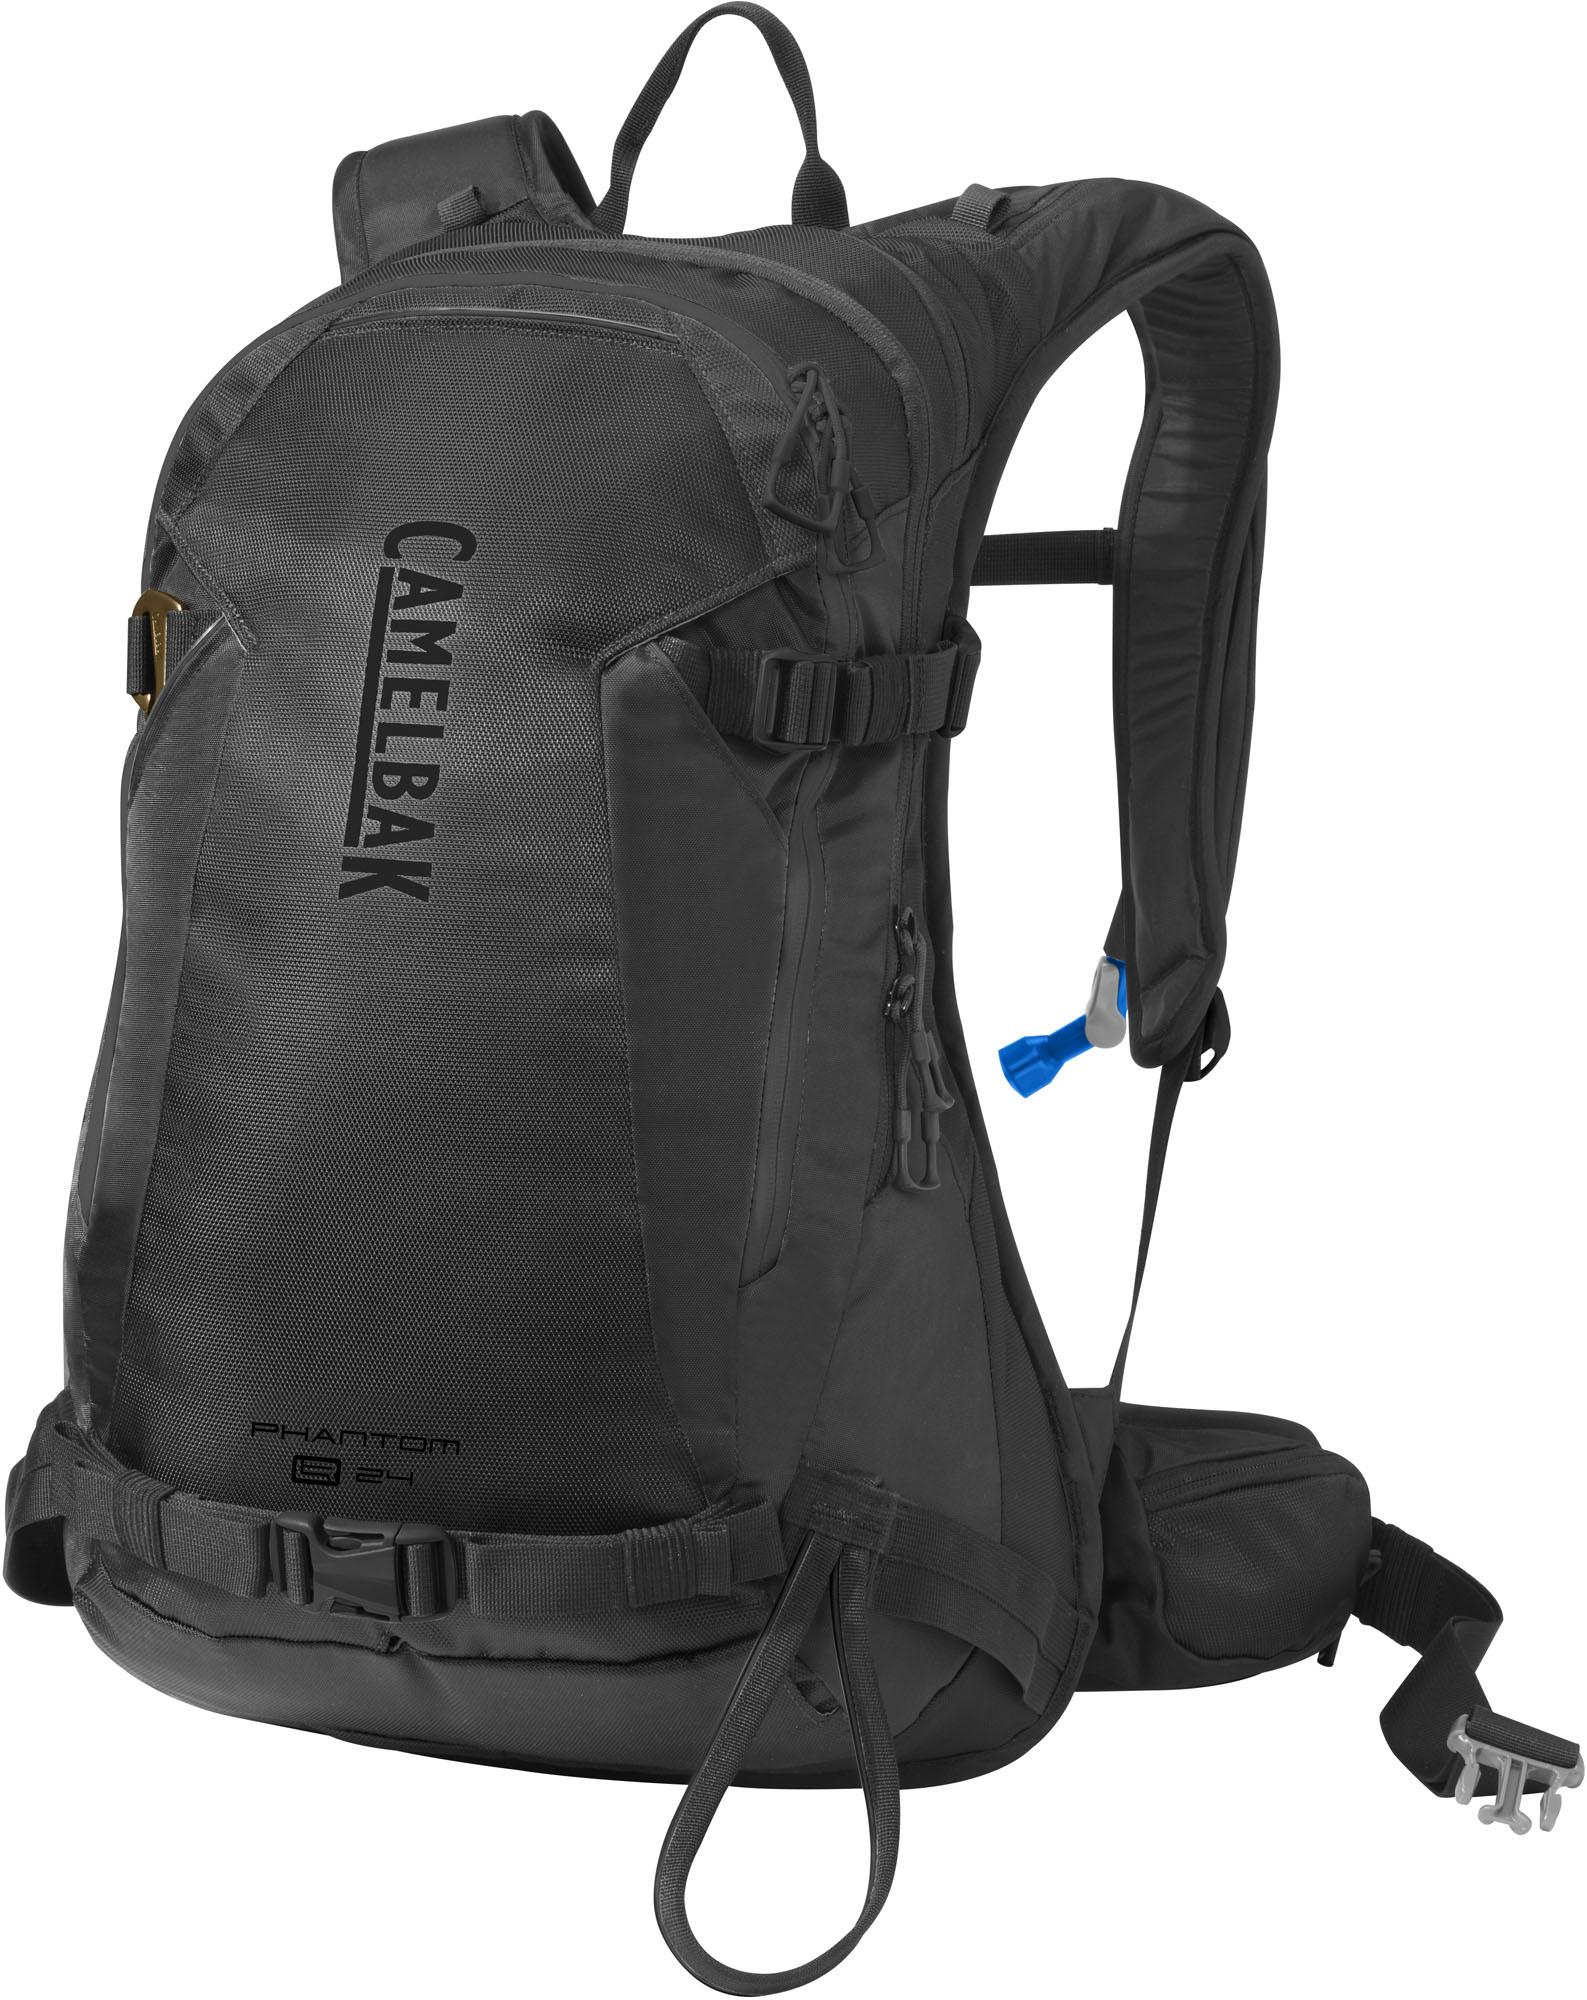 CamelBak Phantom LR 24 in Black